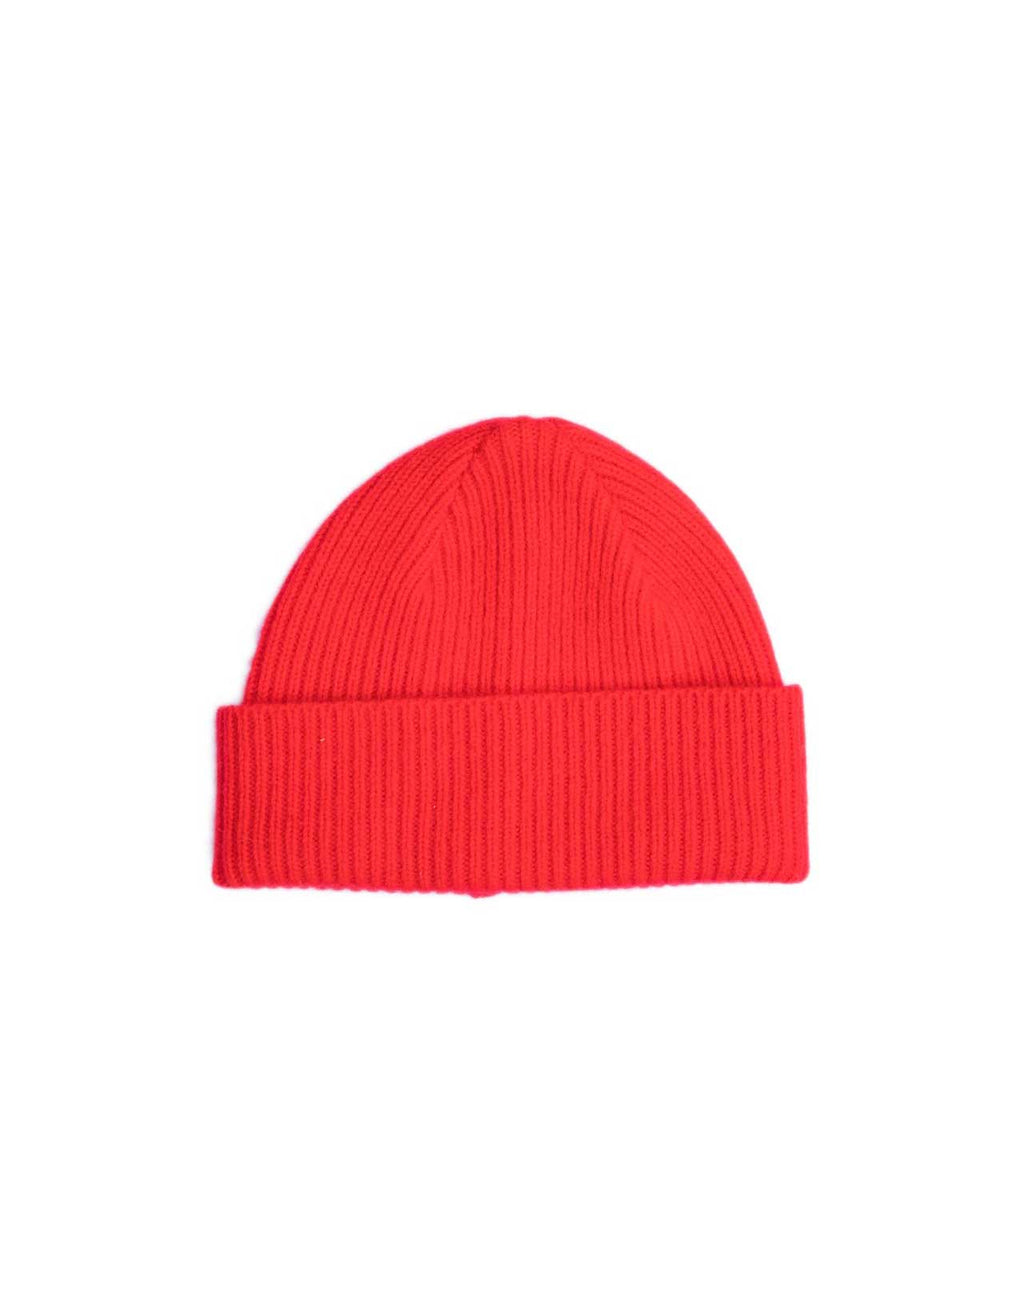 Bonnet Barra Robert Mackie couleur REd